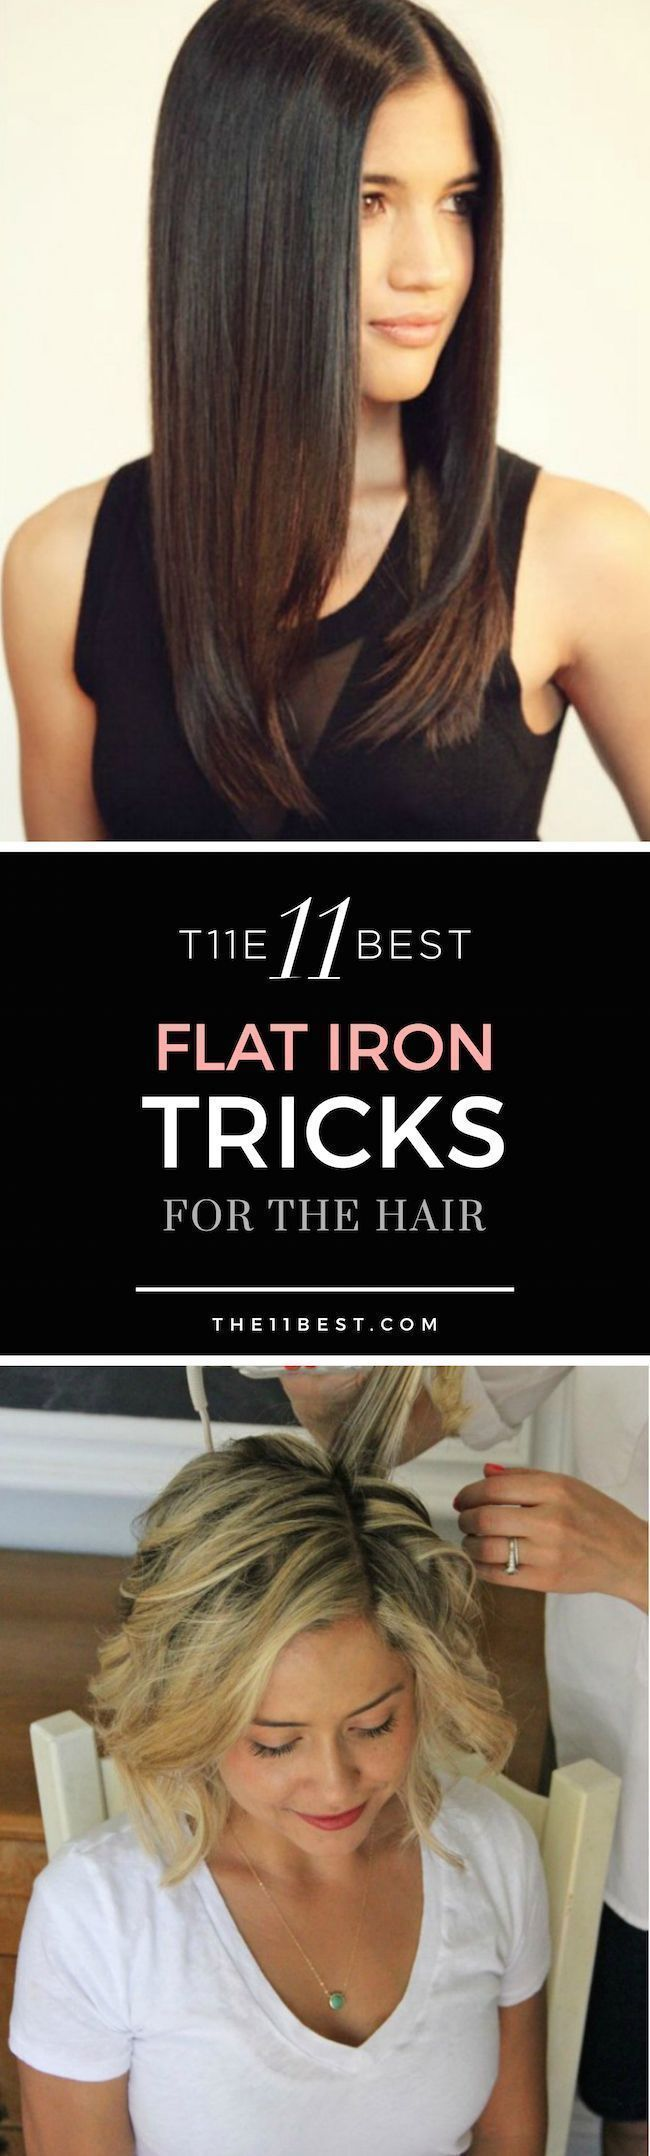 hair cut style images 163 best hairstyles images on hair cut new 7587 | e1f66e3aaab0fea3f8a88693d90f27a7 beauty beauty hacks